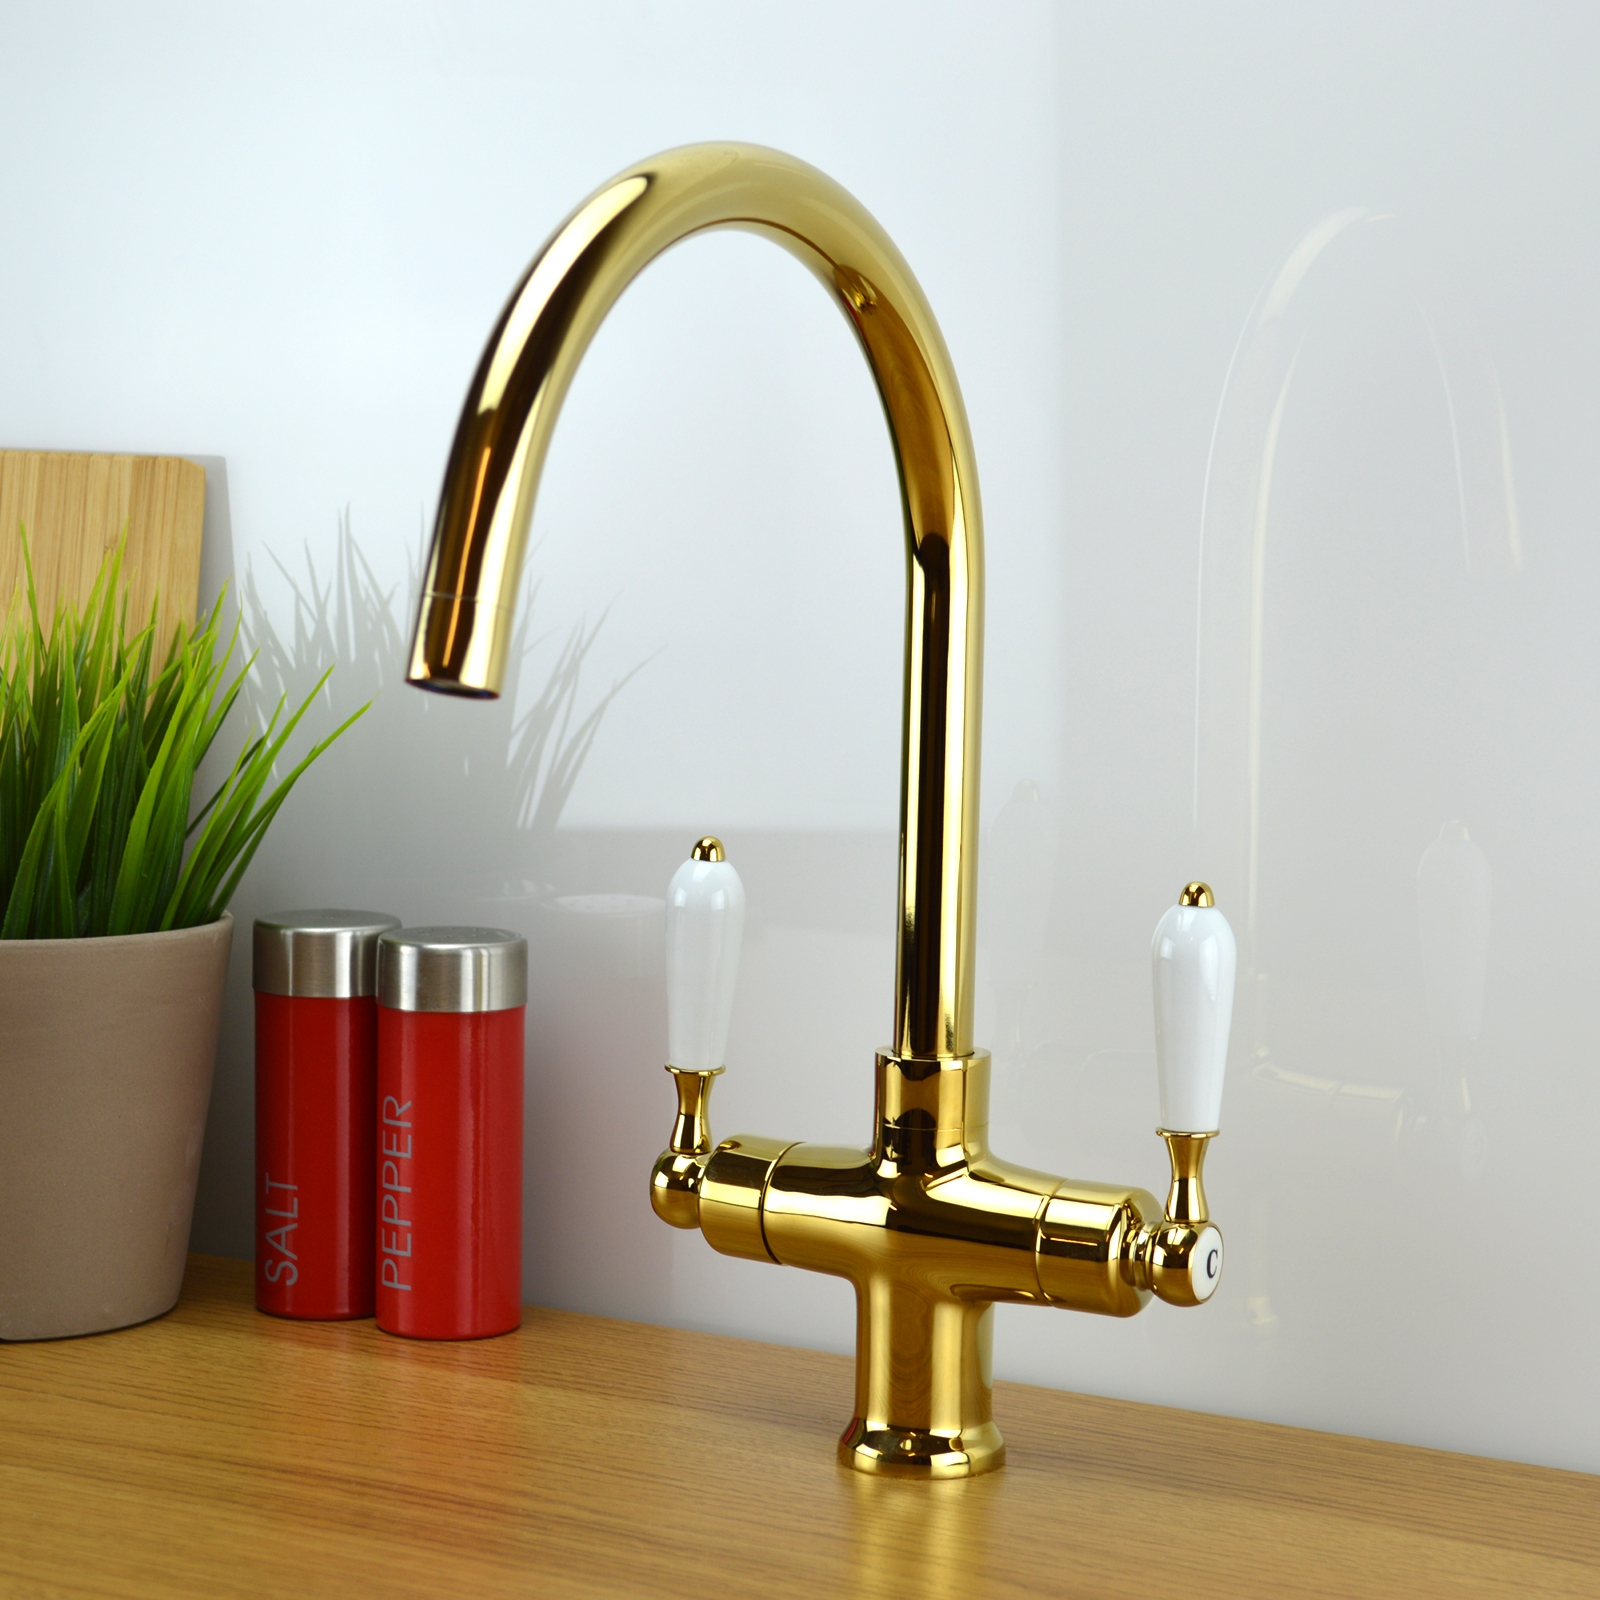 enki chrome kitchen sink mixer tap traditional black. Interior Design Ideas. Home Design Ideas